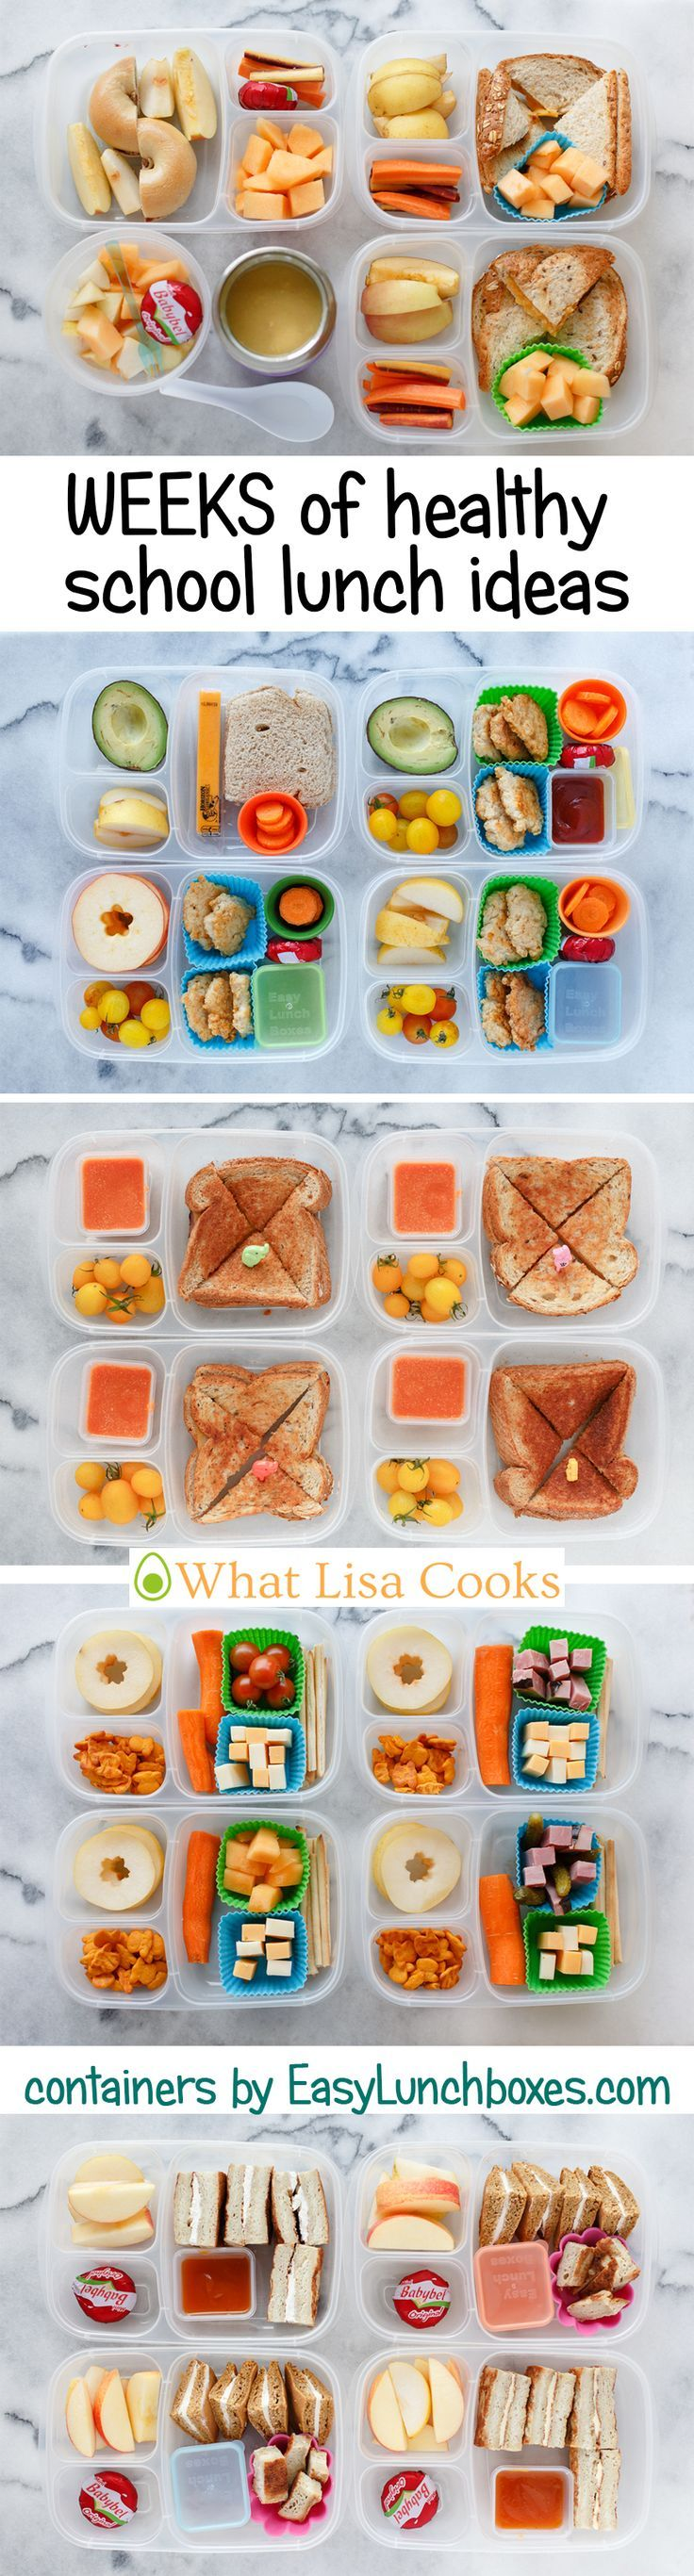 School lunch ideas. Week by week. From a mom of 4. Packed in EasyLunchboxes — Click HERE for Weight Loss Results in 3 Weeks! -- http://realresultsin3weeks.info/